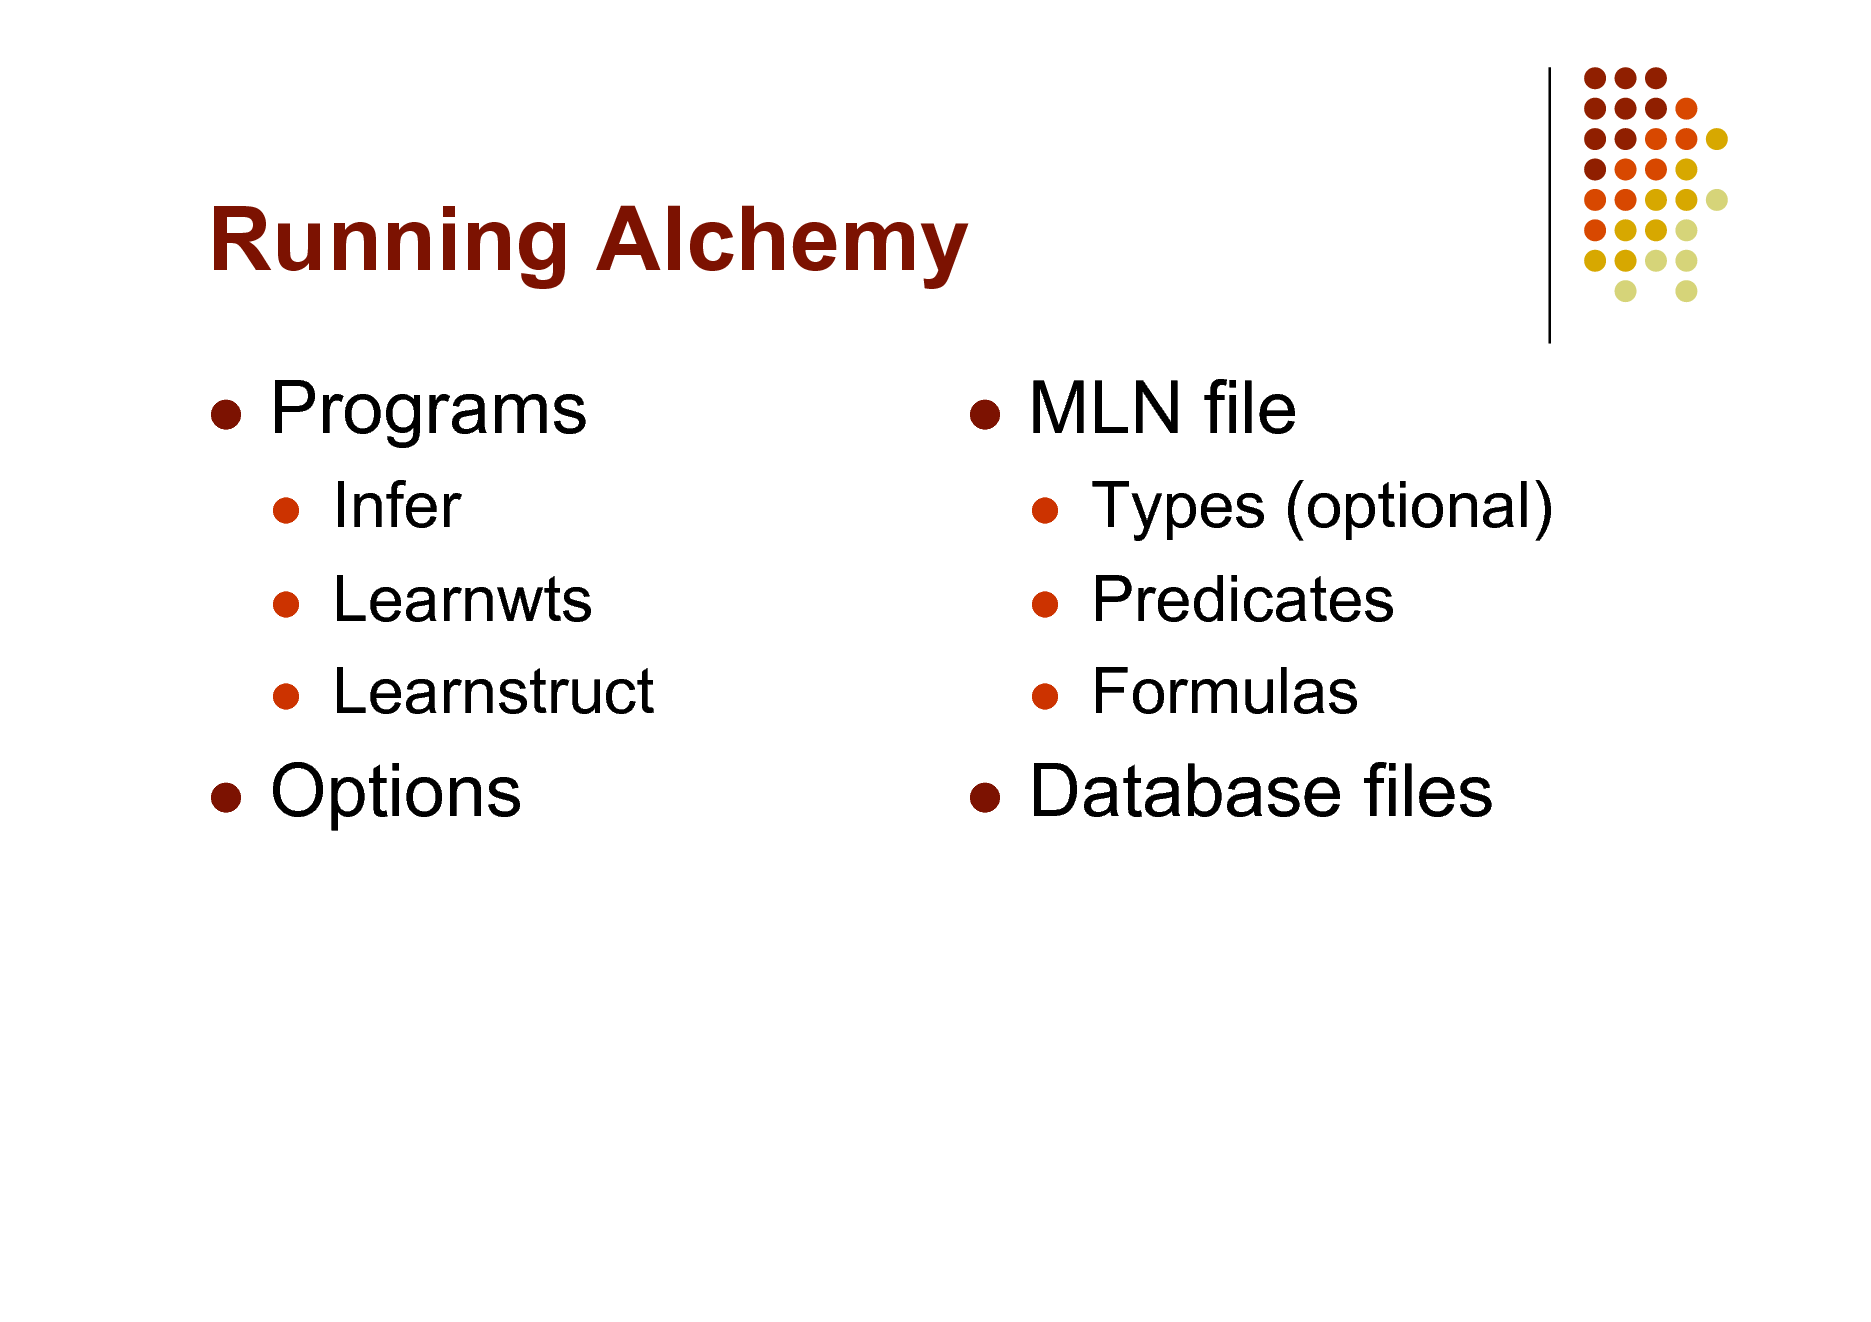 Slide: Running Alchemy   Programs       MLN file     Infer Learnwts Learnstruct   Types (optional) Predicates Formulas    Options  Database files